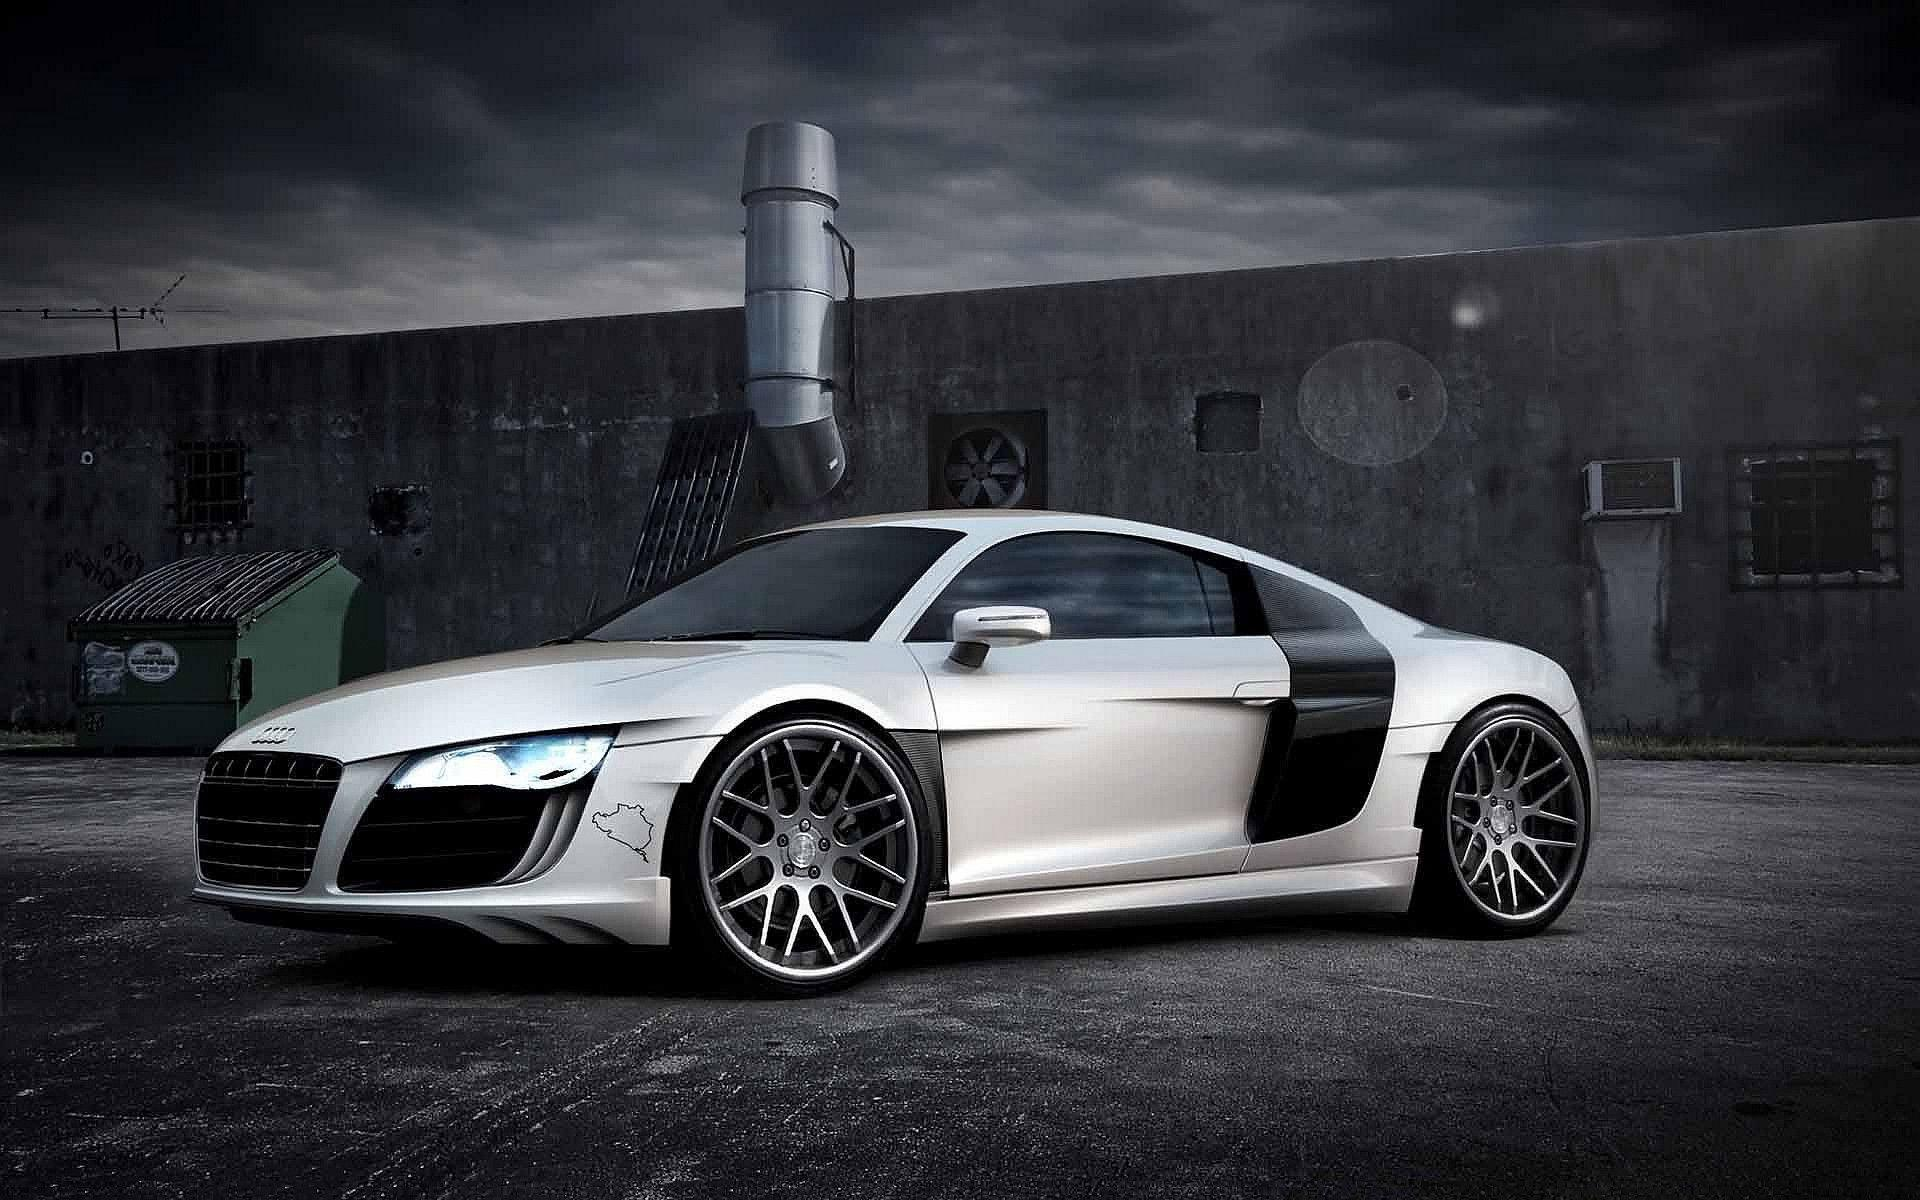 audi r8 wallpapers hd wallpaper cave. Black Bedroom Furniture Sets. Home Design Ideas